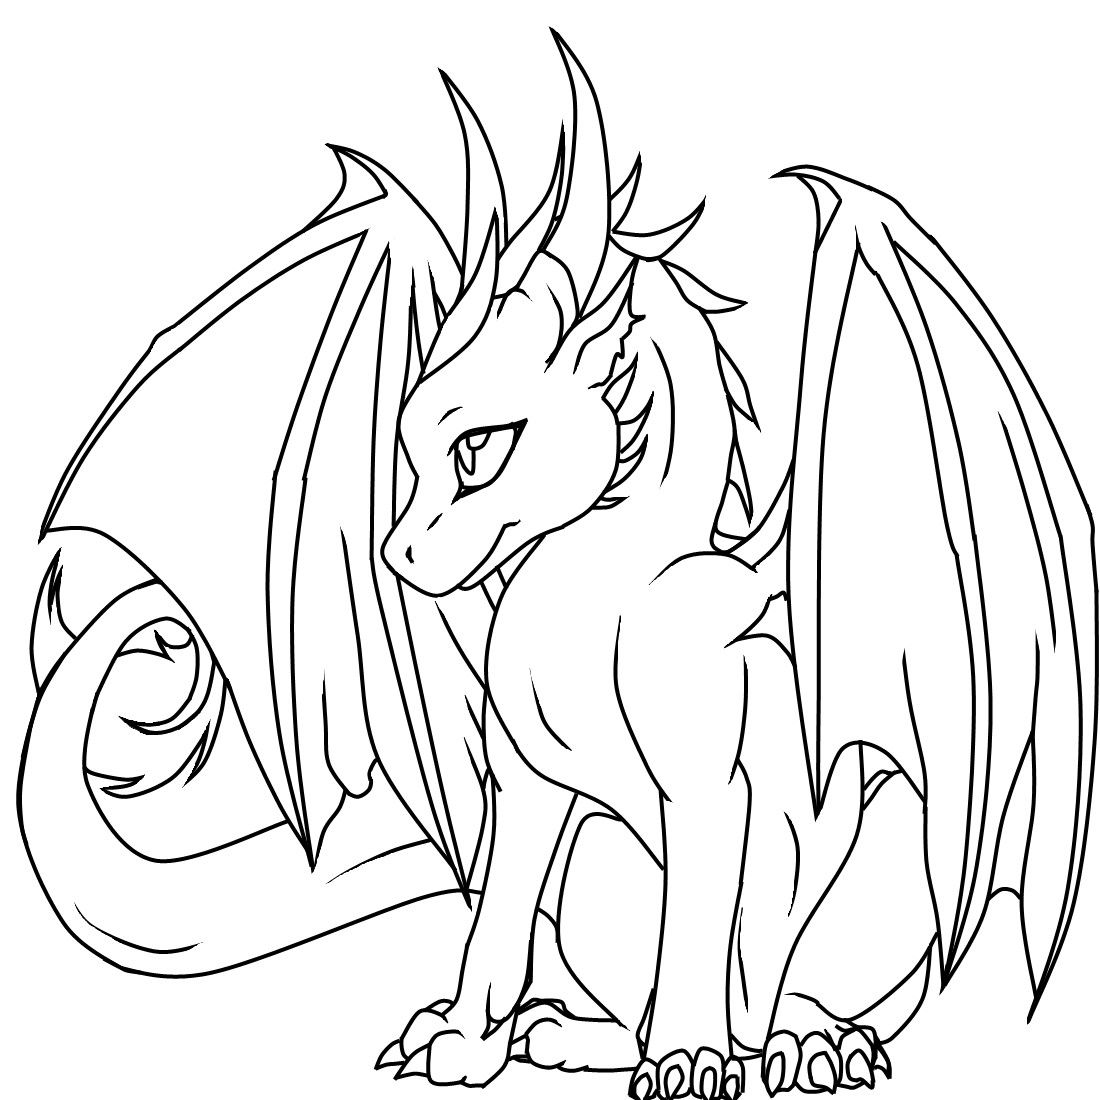 Baby Dragon Coloring Pages Luxury Printable Cool Dragon Coloring Pages Coloring Pages Patinsudouest Dragon A Colorier Coloriage Dragon Bebe Dragon